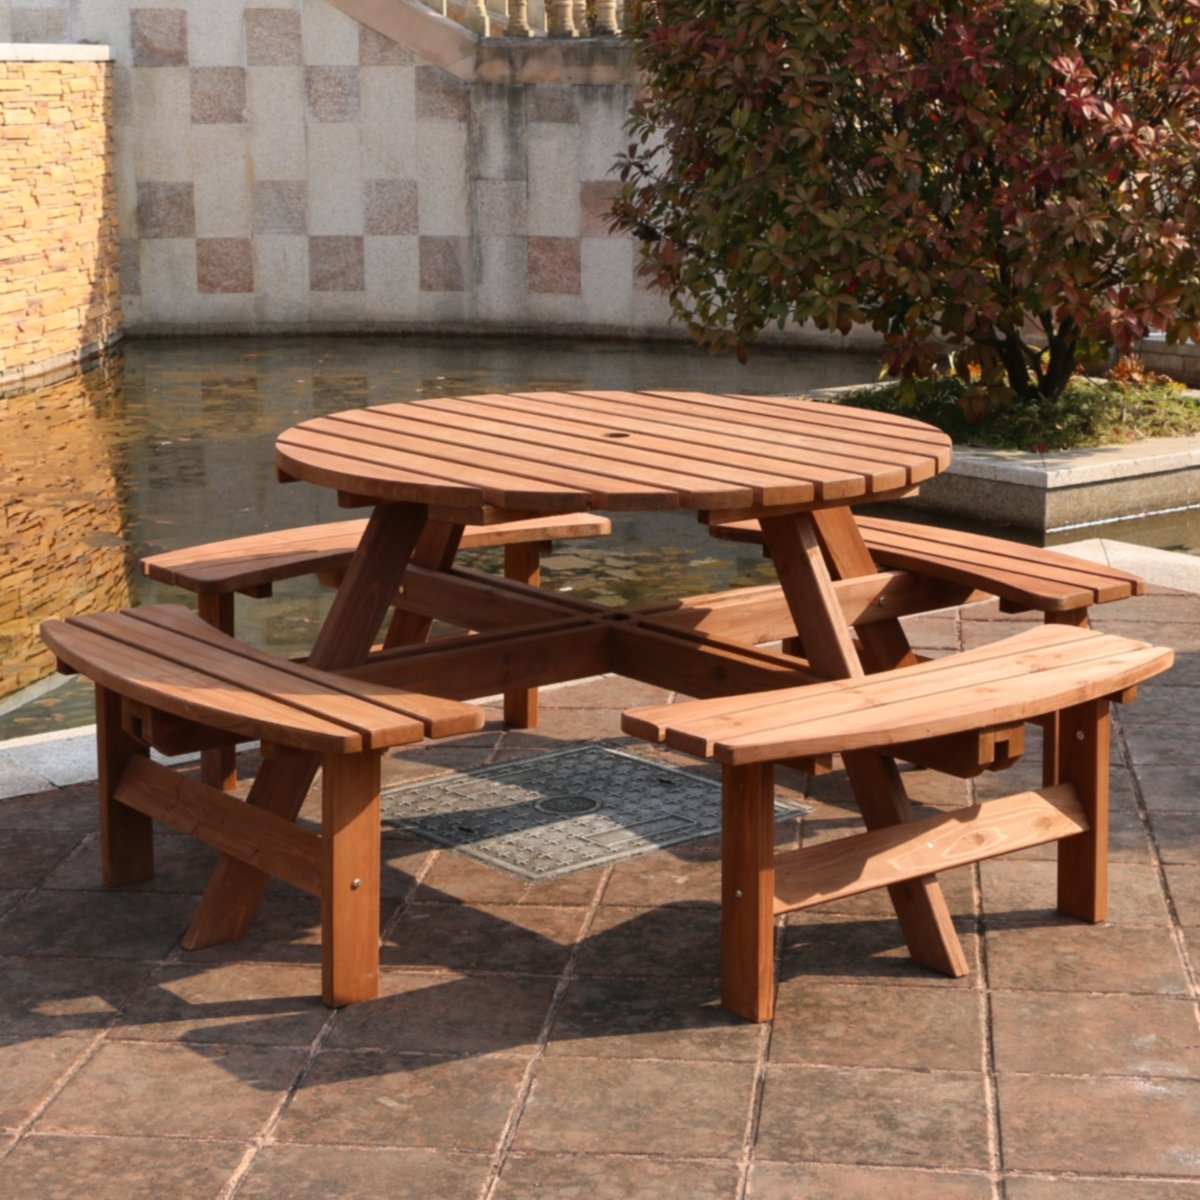 Marvelous Rutland County Garden Furniture Ashwell Garden Wooden Picnic Bench 8 Seater Circular Brown Pub Bench Indoor Outdoor Heavy Duty Timber Cjindustries Chair Design For Home Cjindustriesco